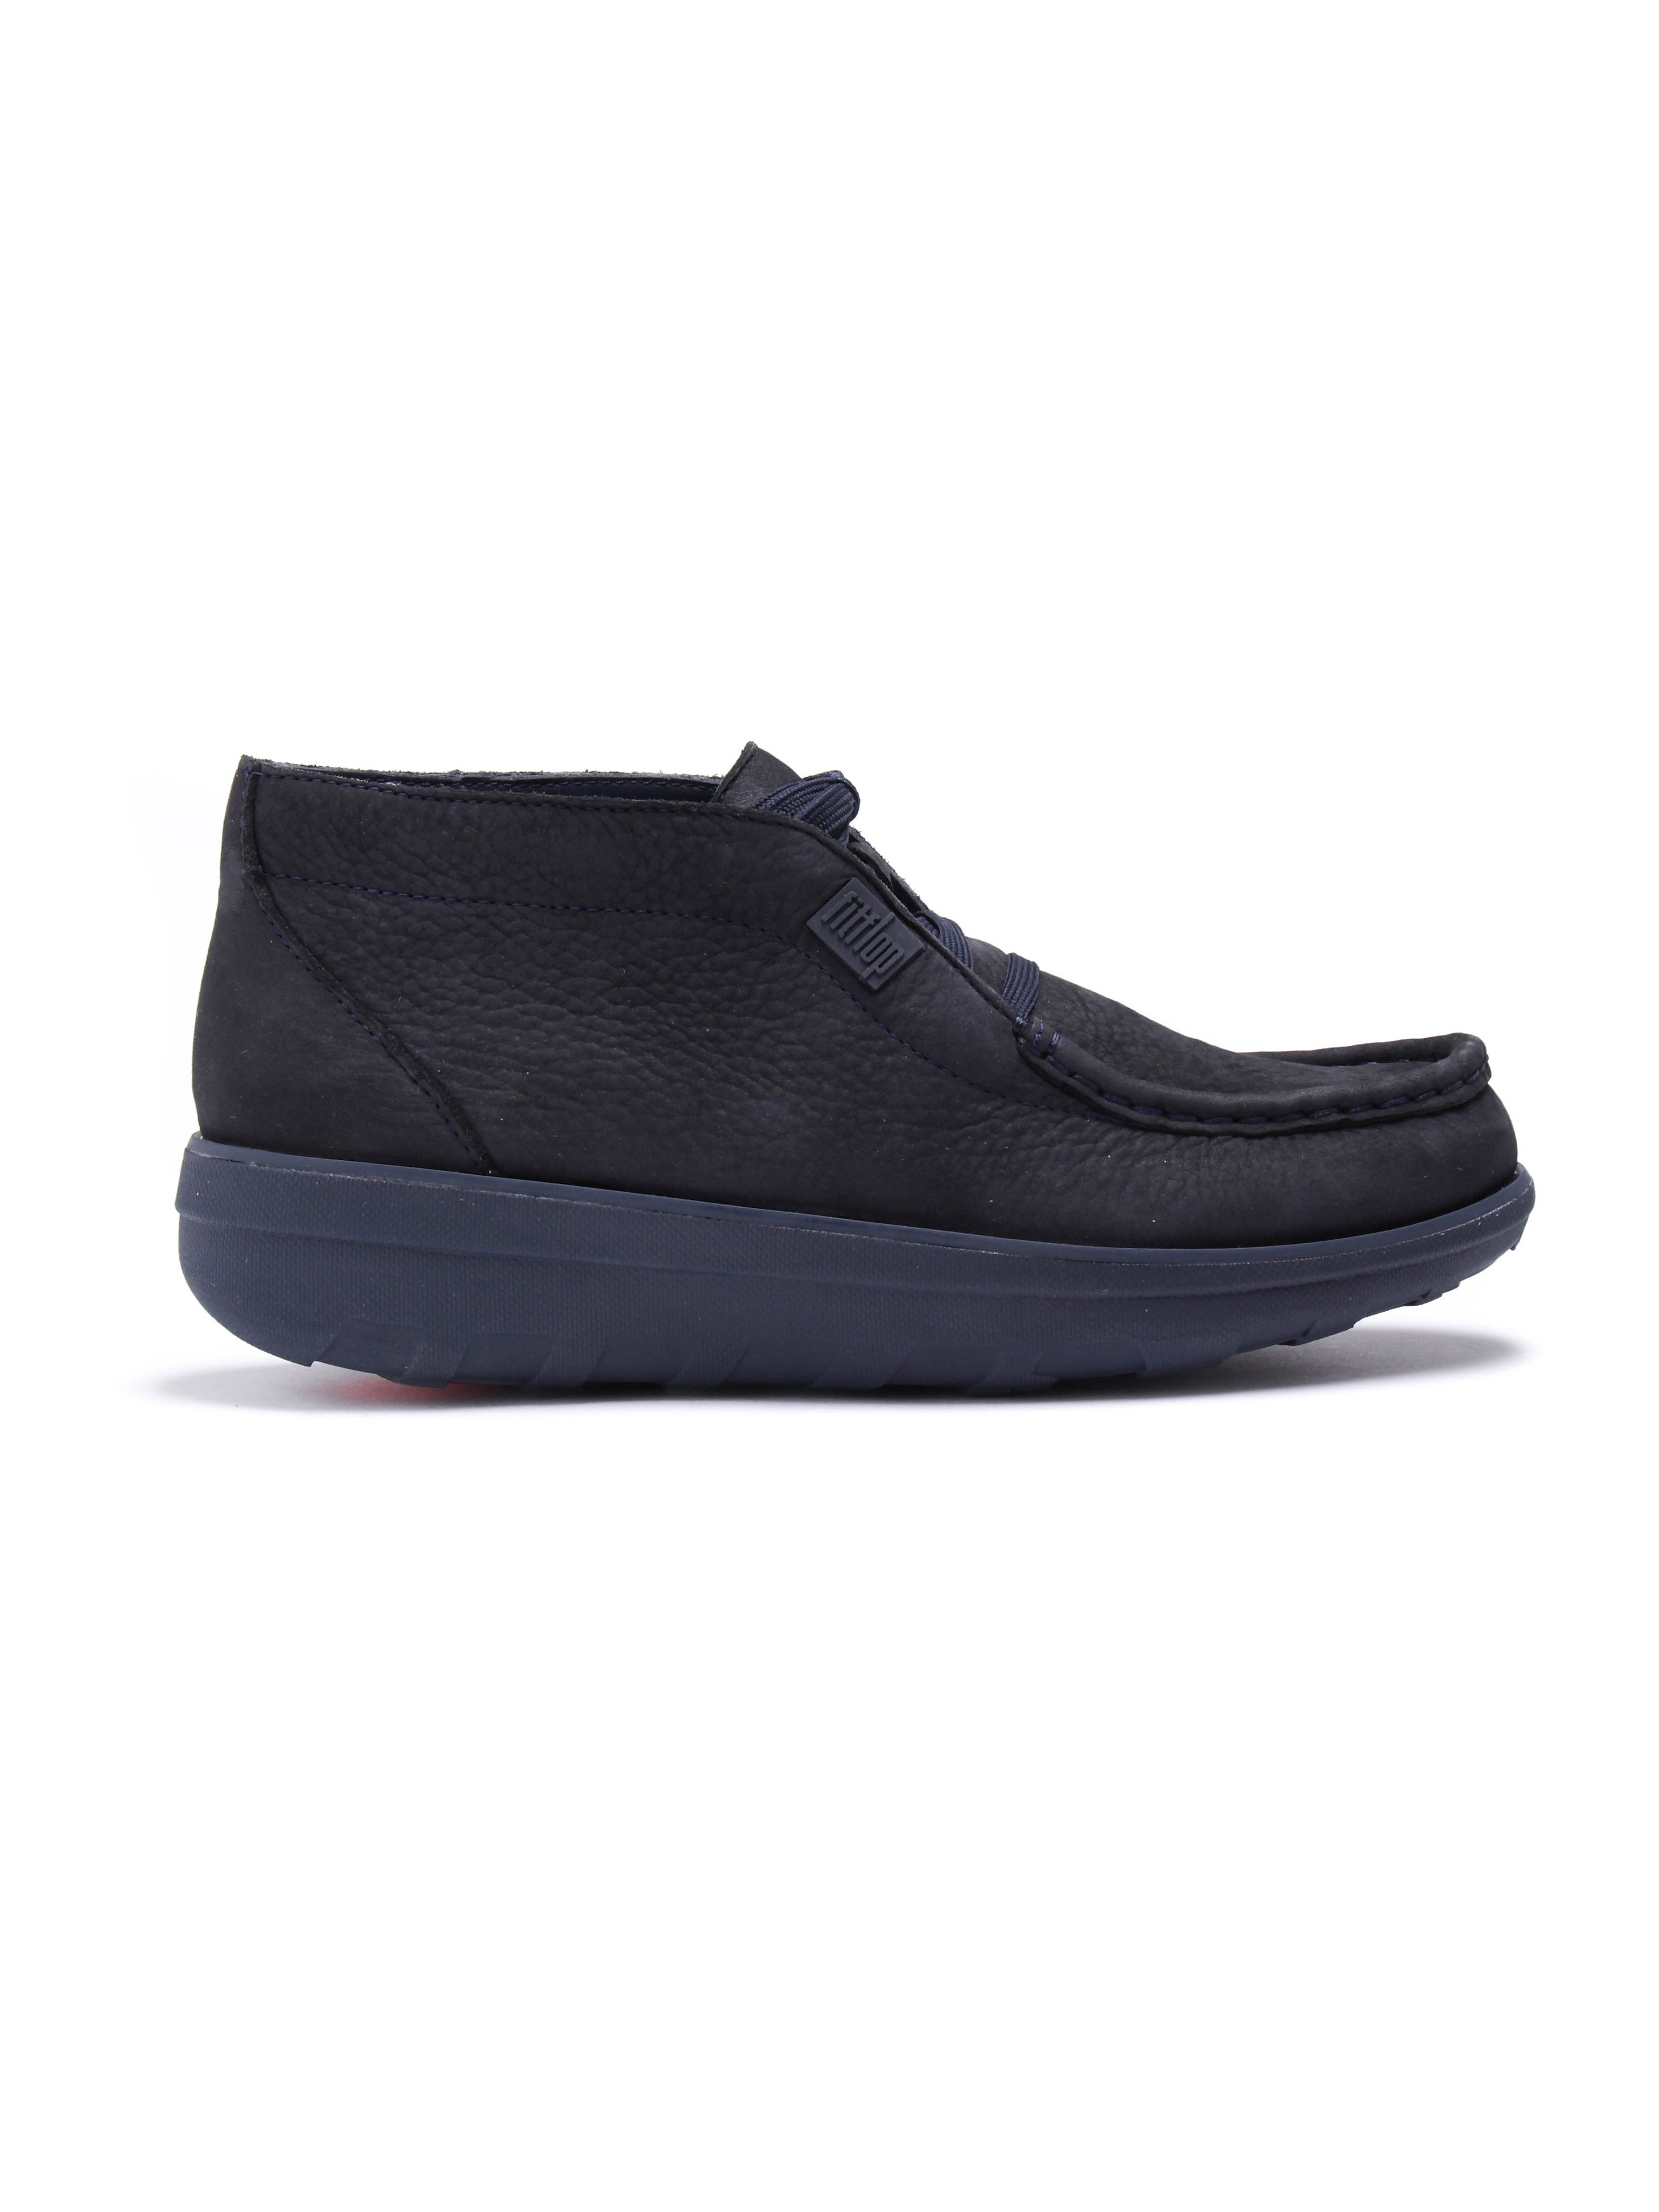 FitFlop Womens Loaff Slip On Ankle Boot - Supernavy